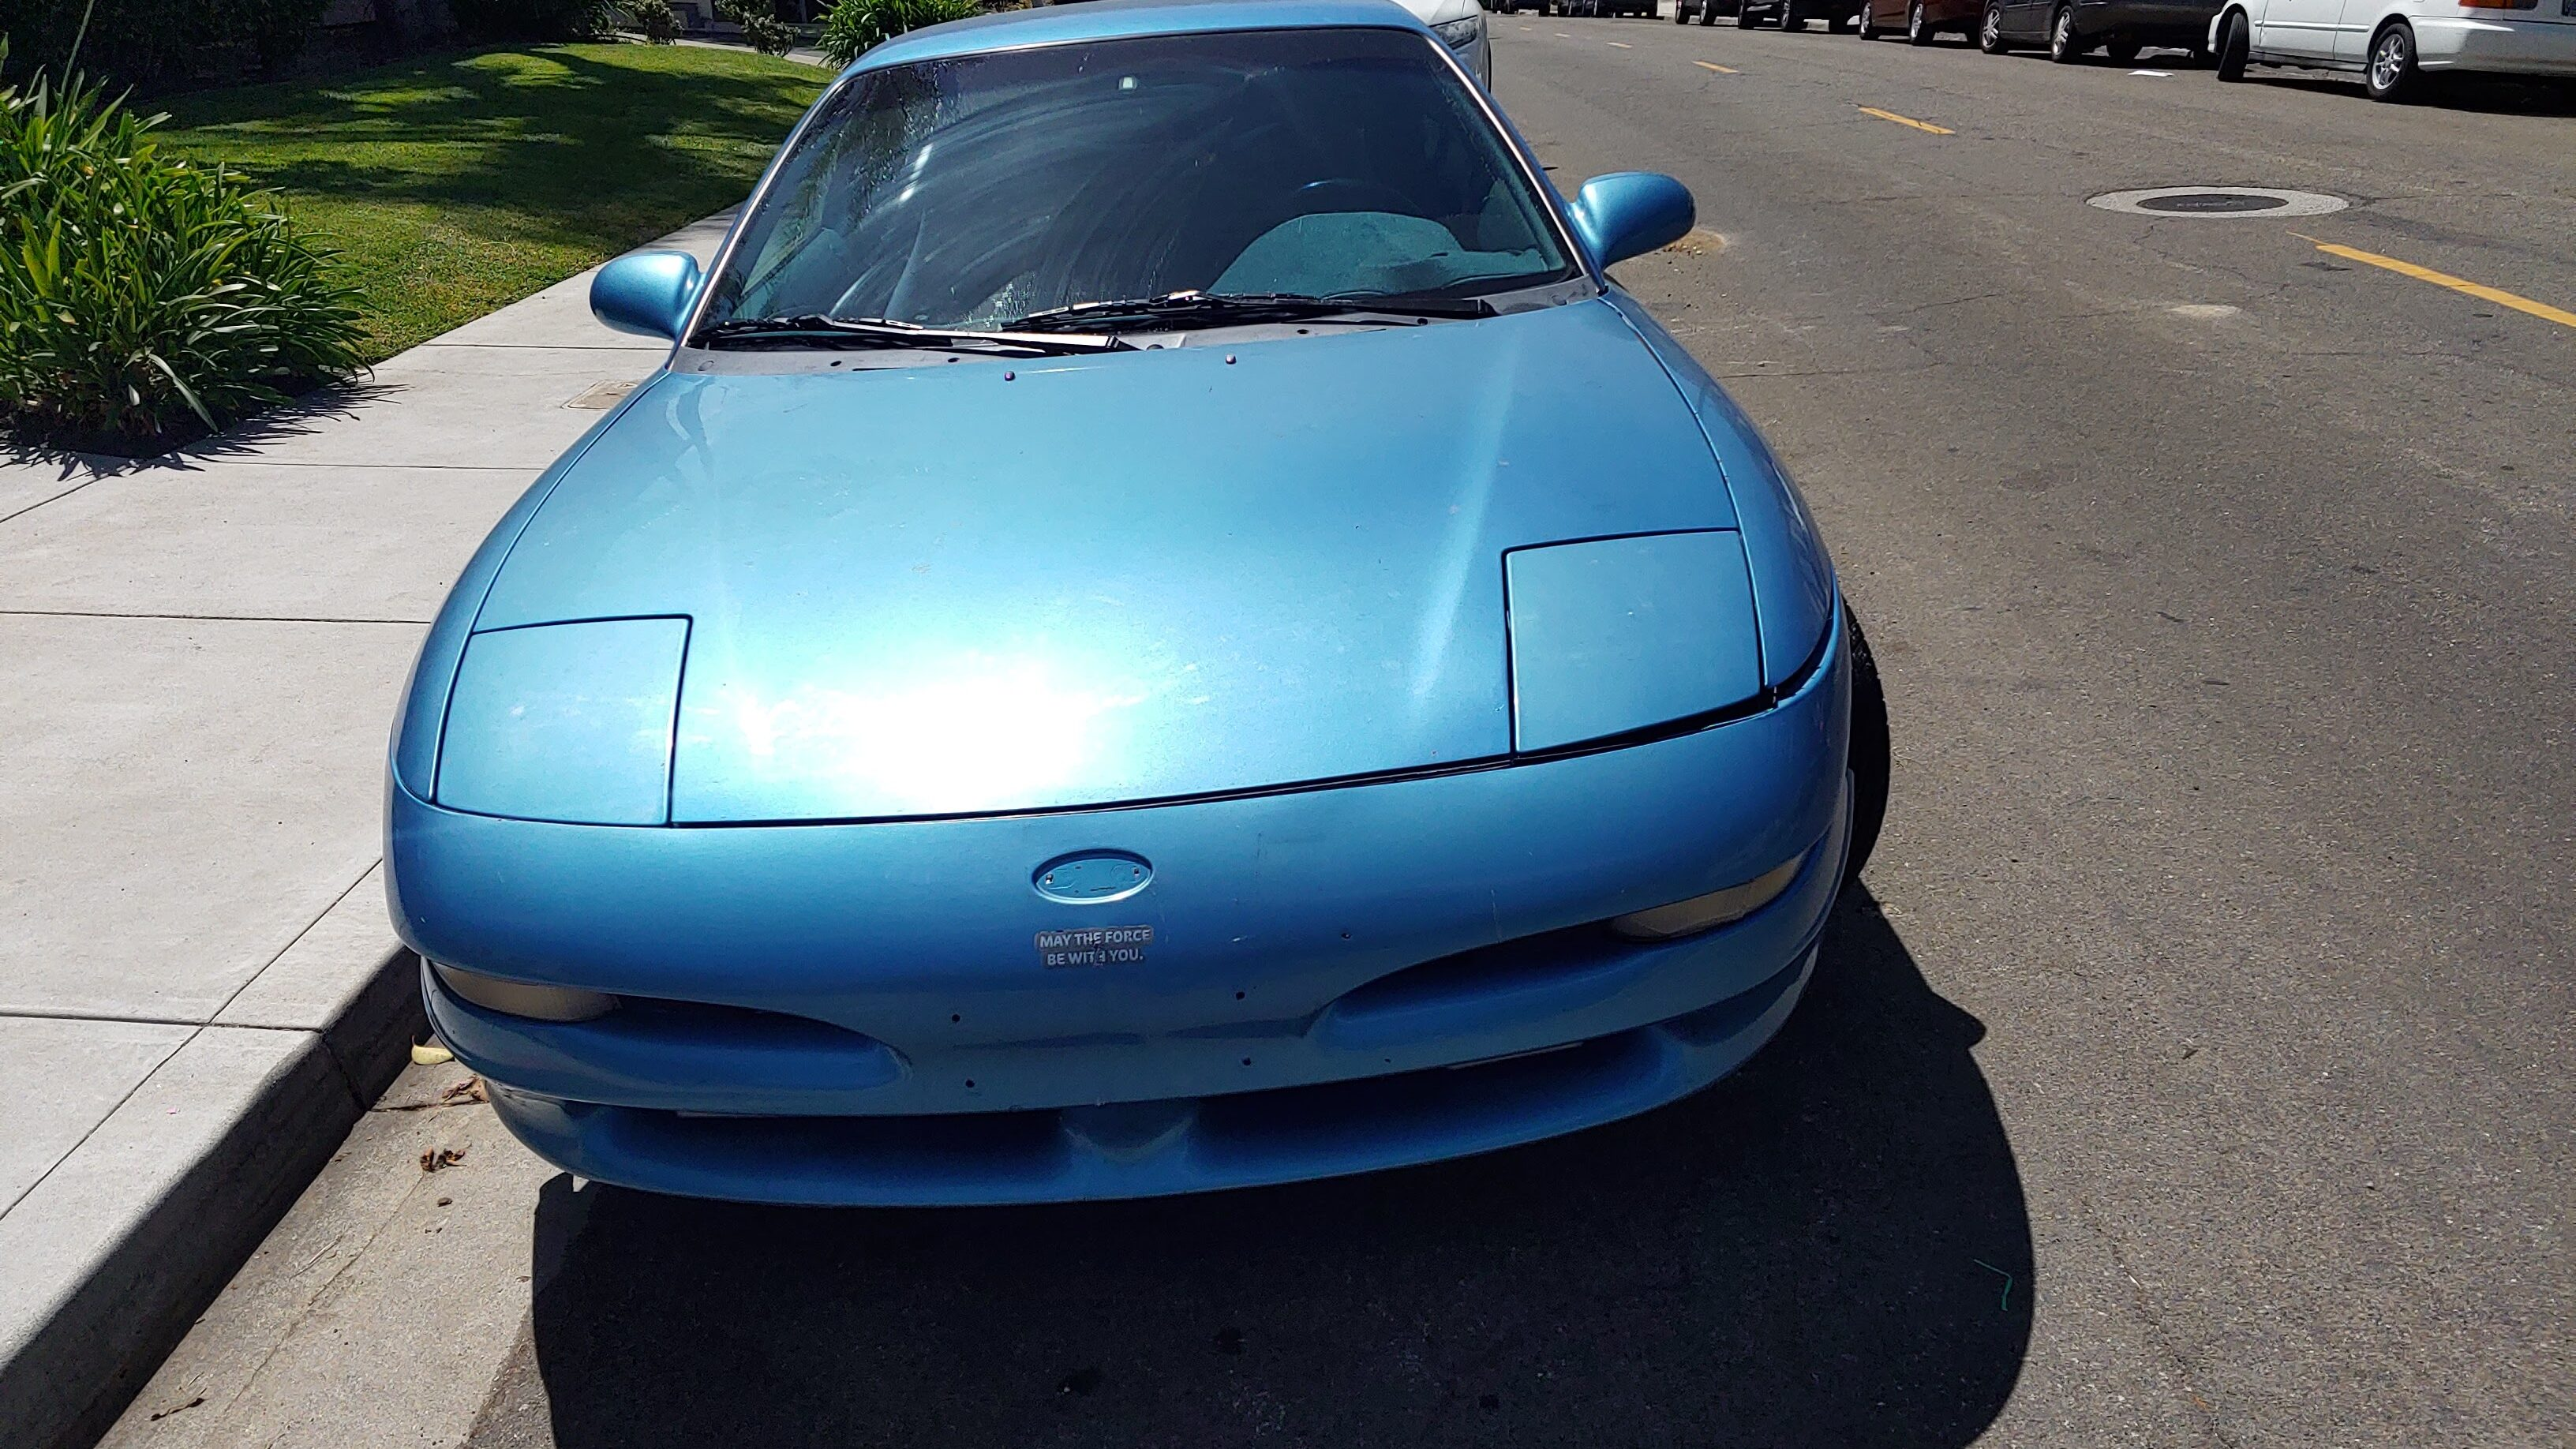 Preparations & Repainting of 93 Ford Probe GT 2.5L Hatchback